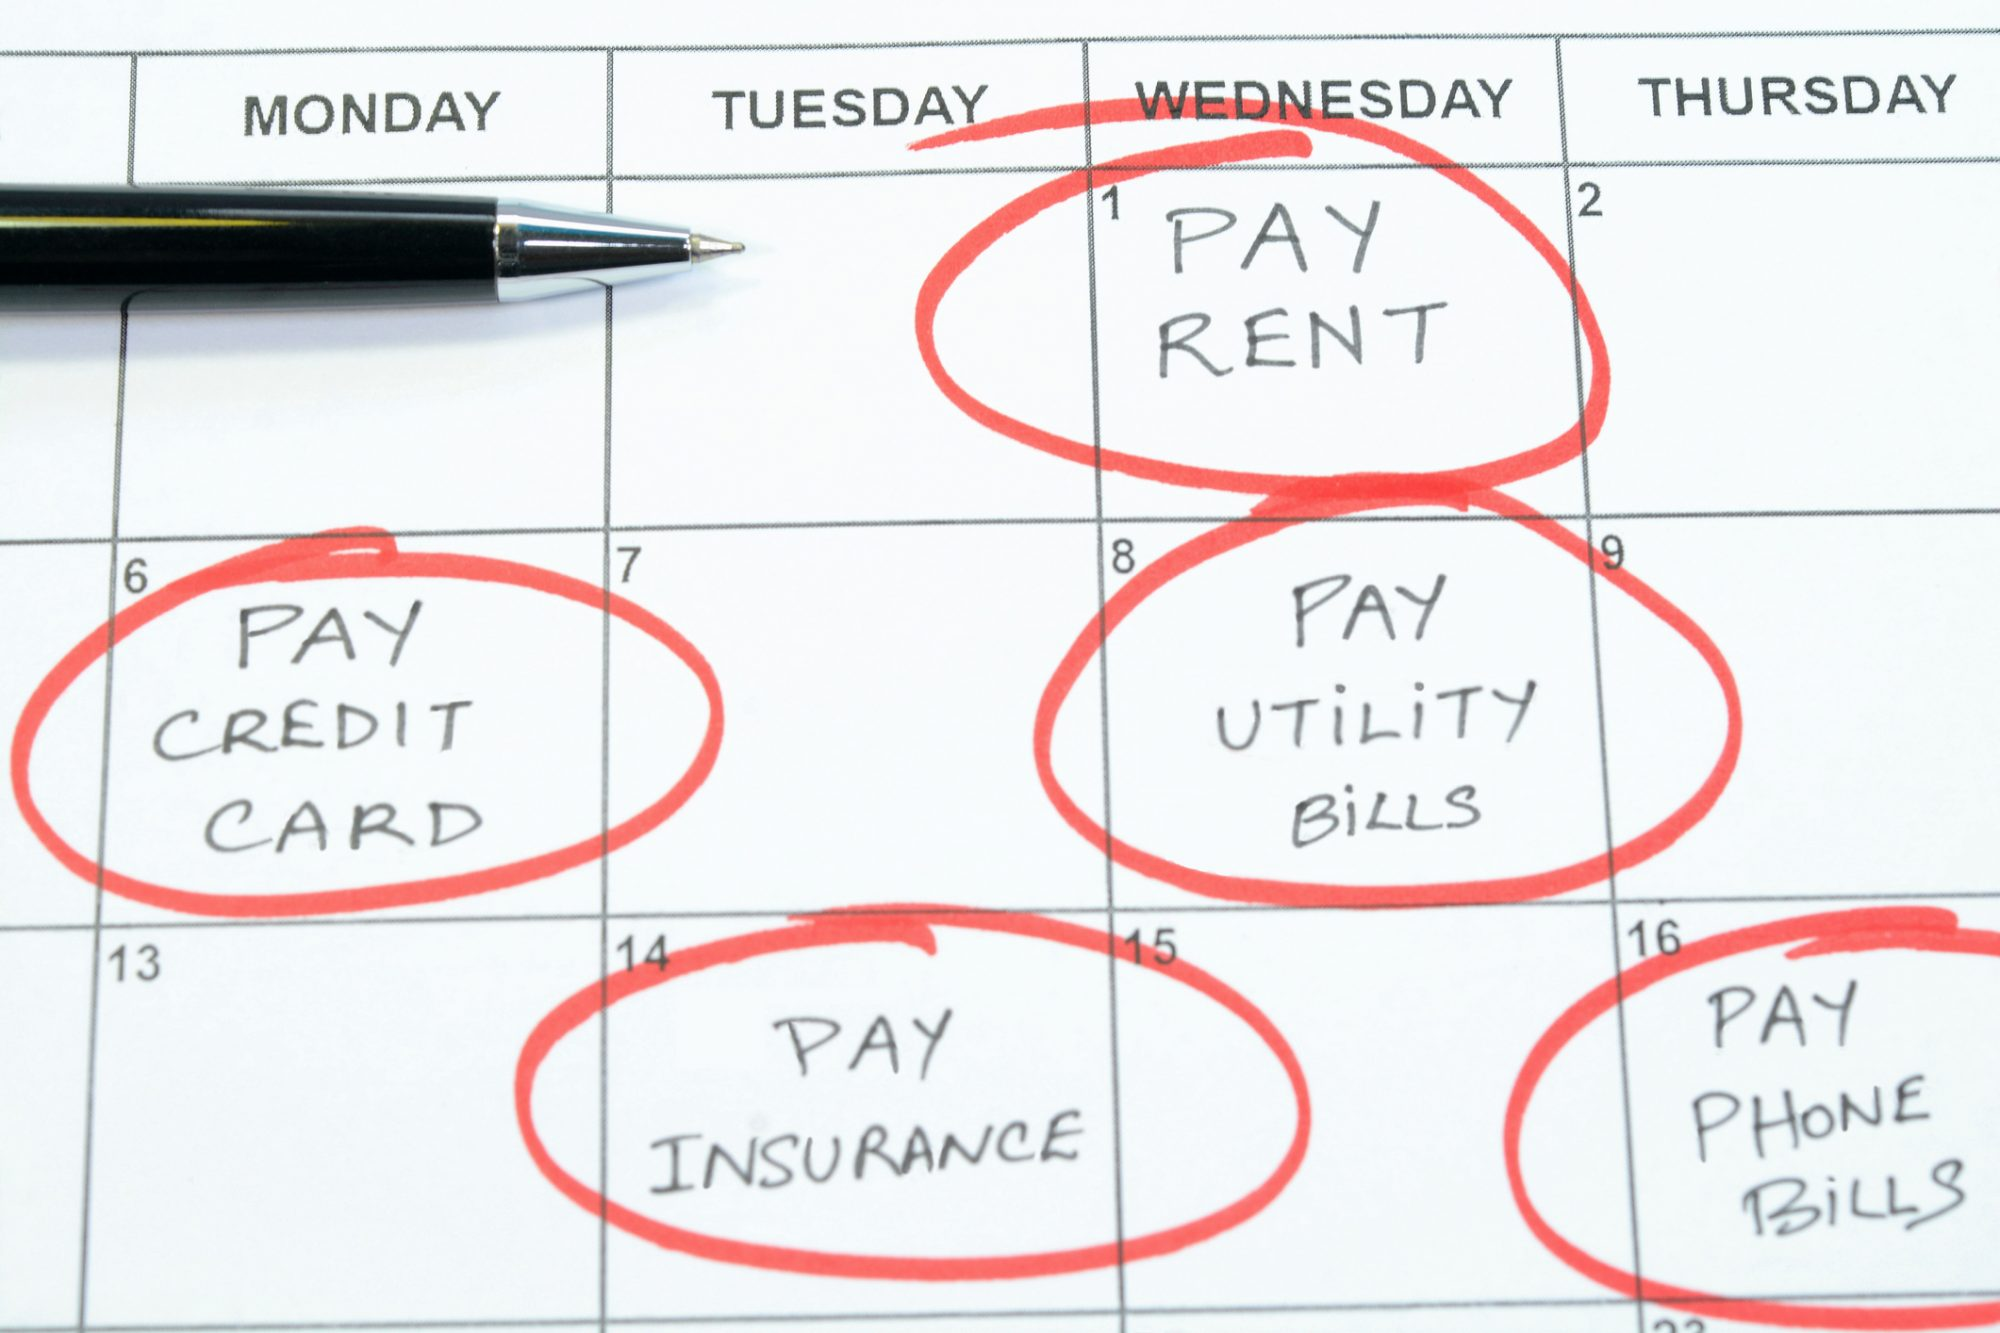 Debt can accumulate interest over time, so if you're carrying high-interest debt, work on paying that off as soon as possible. It's easier said than done, of course, but if you can pay a bill in full instead of partially, do it — the interest you would have accrued by waiting is money that stays in your pocket.